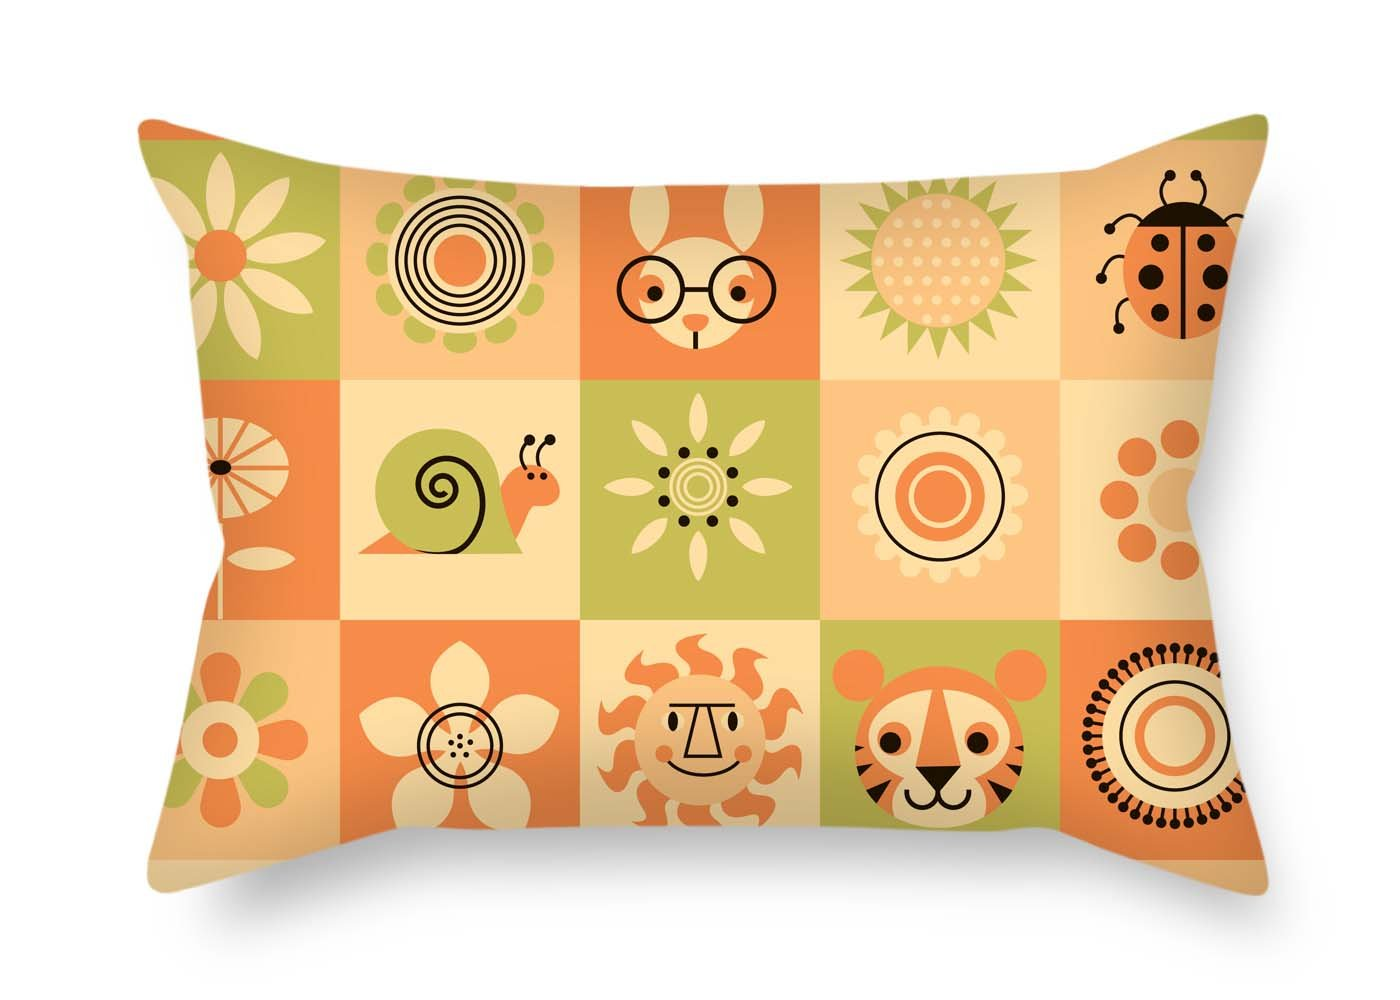 Amazon.com: Eyeselect - Funda de almohada con bloque de ...